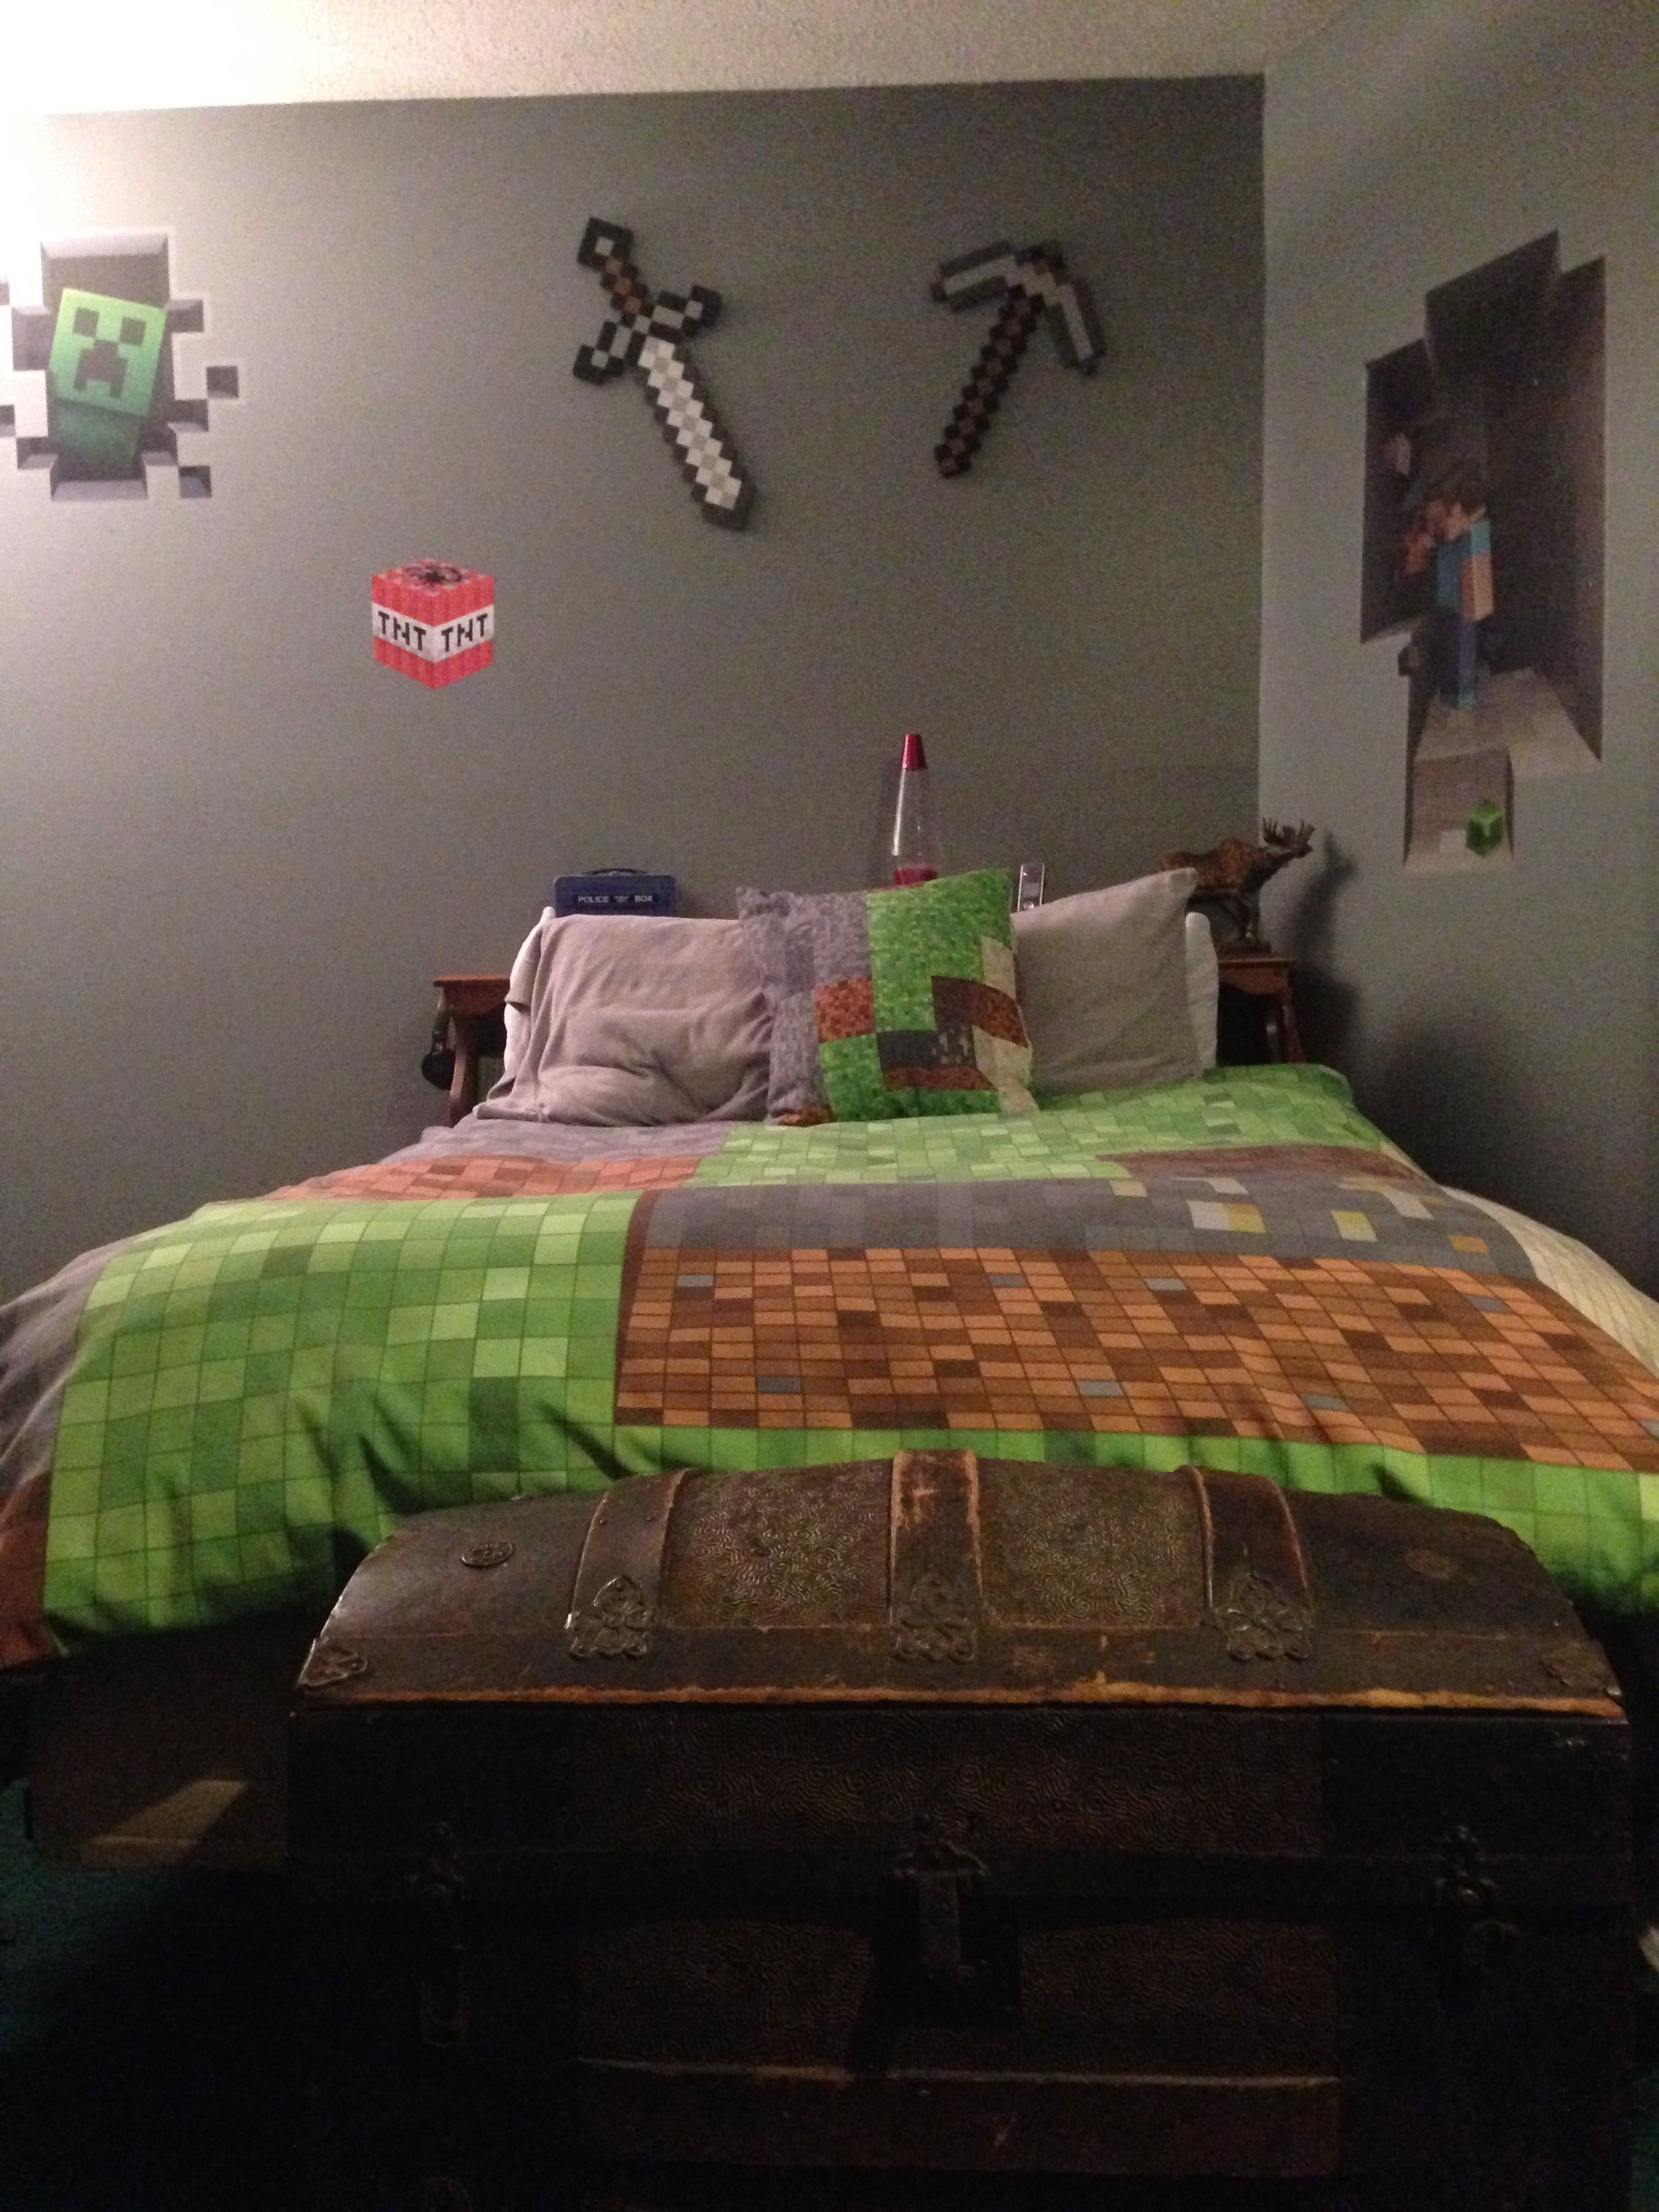 Target Bedding Minecraft Sword And Wall Stickers On Pinterest